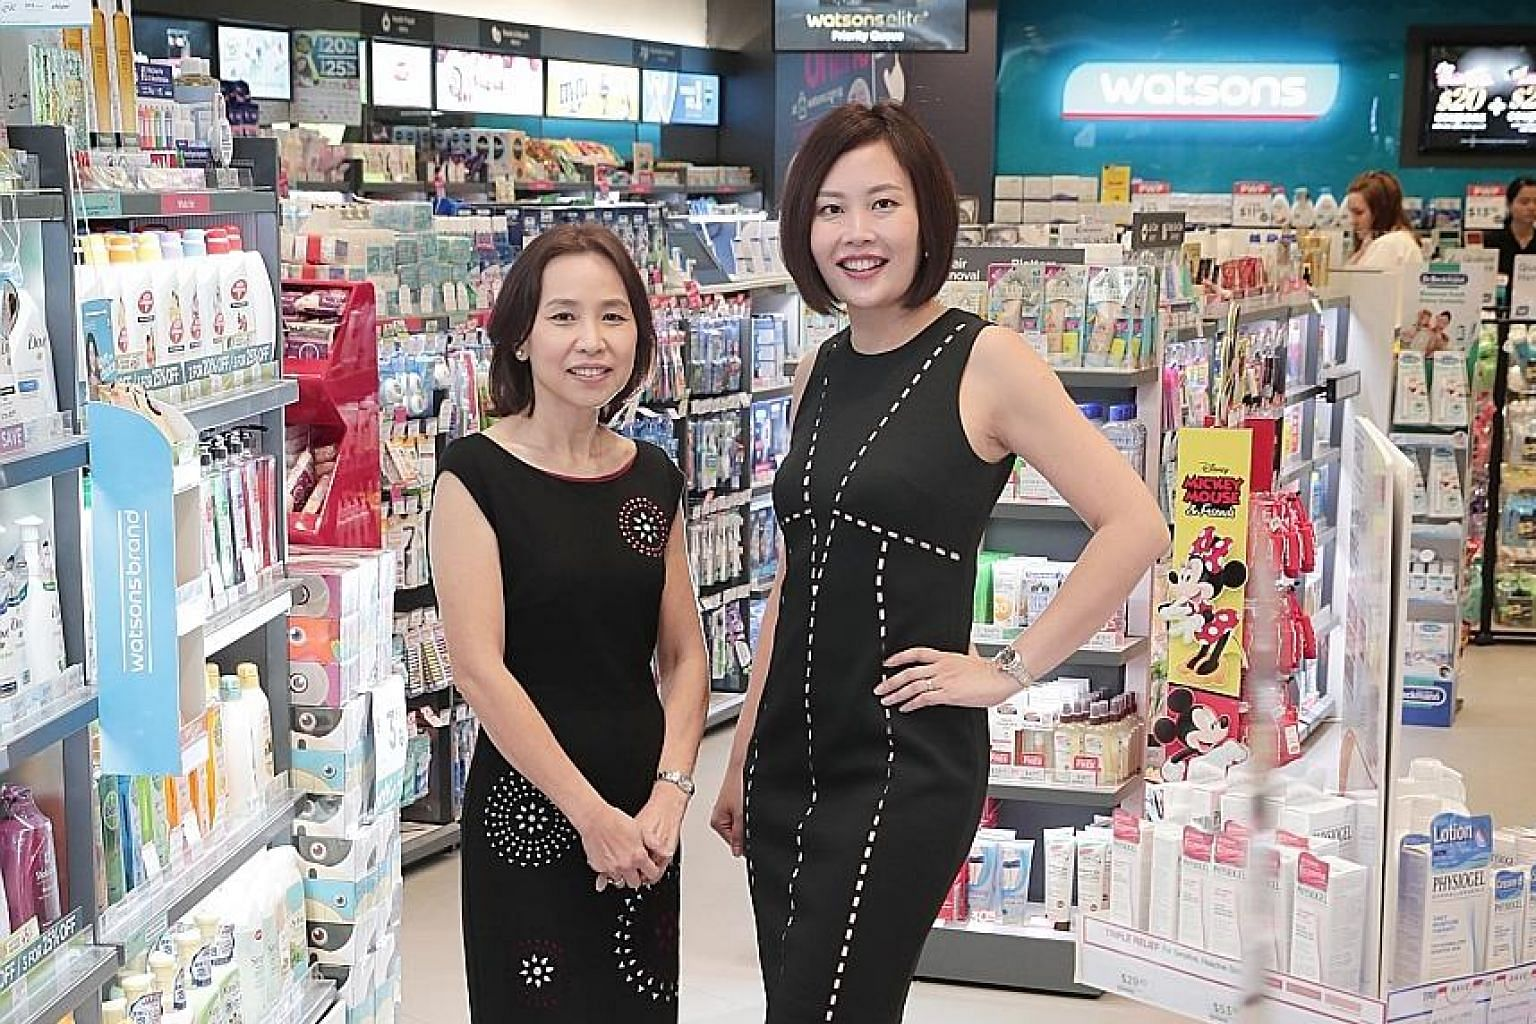 Watsons Singapore trading director Goh Choon Gek (left) and general manager Irene Lau say the drugstore industry continues to see many opportunities, despite the economic downturn and falling retail turnover figures.